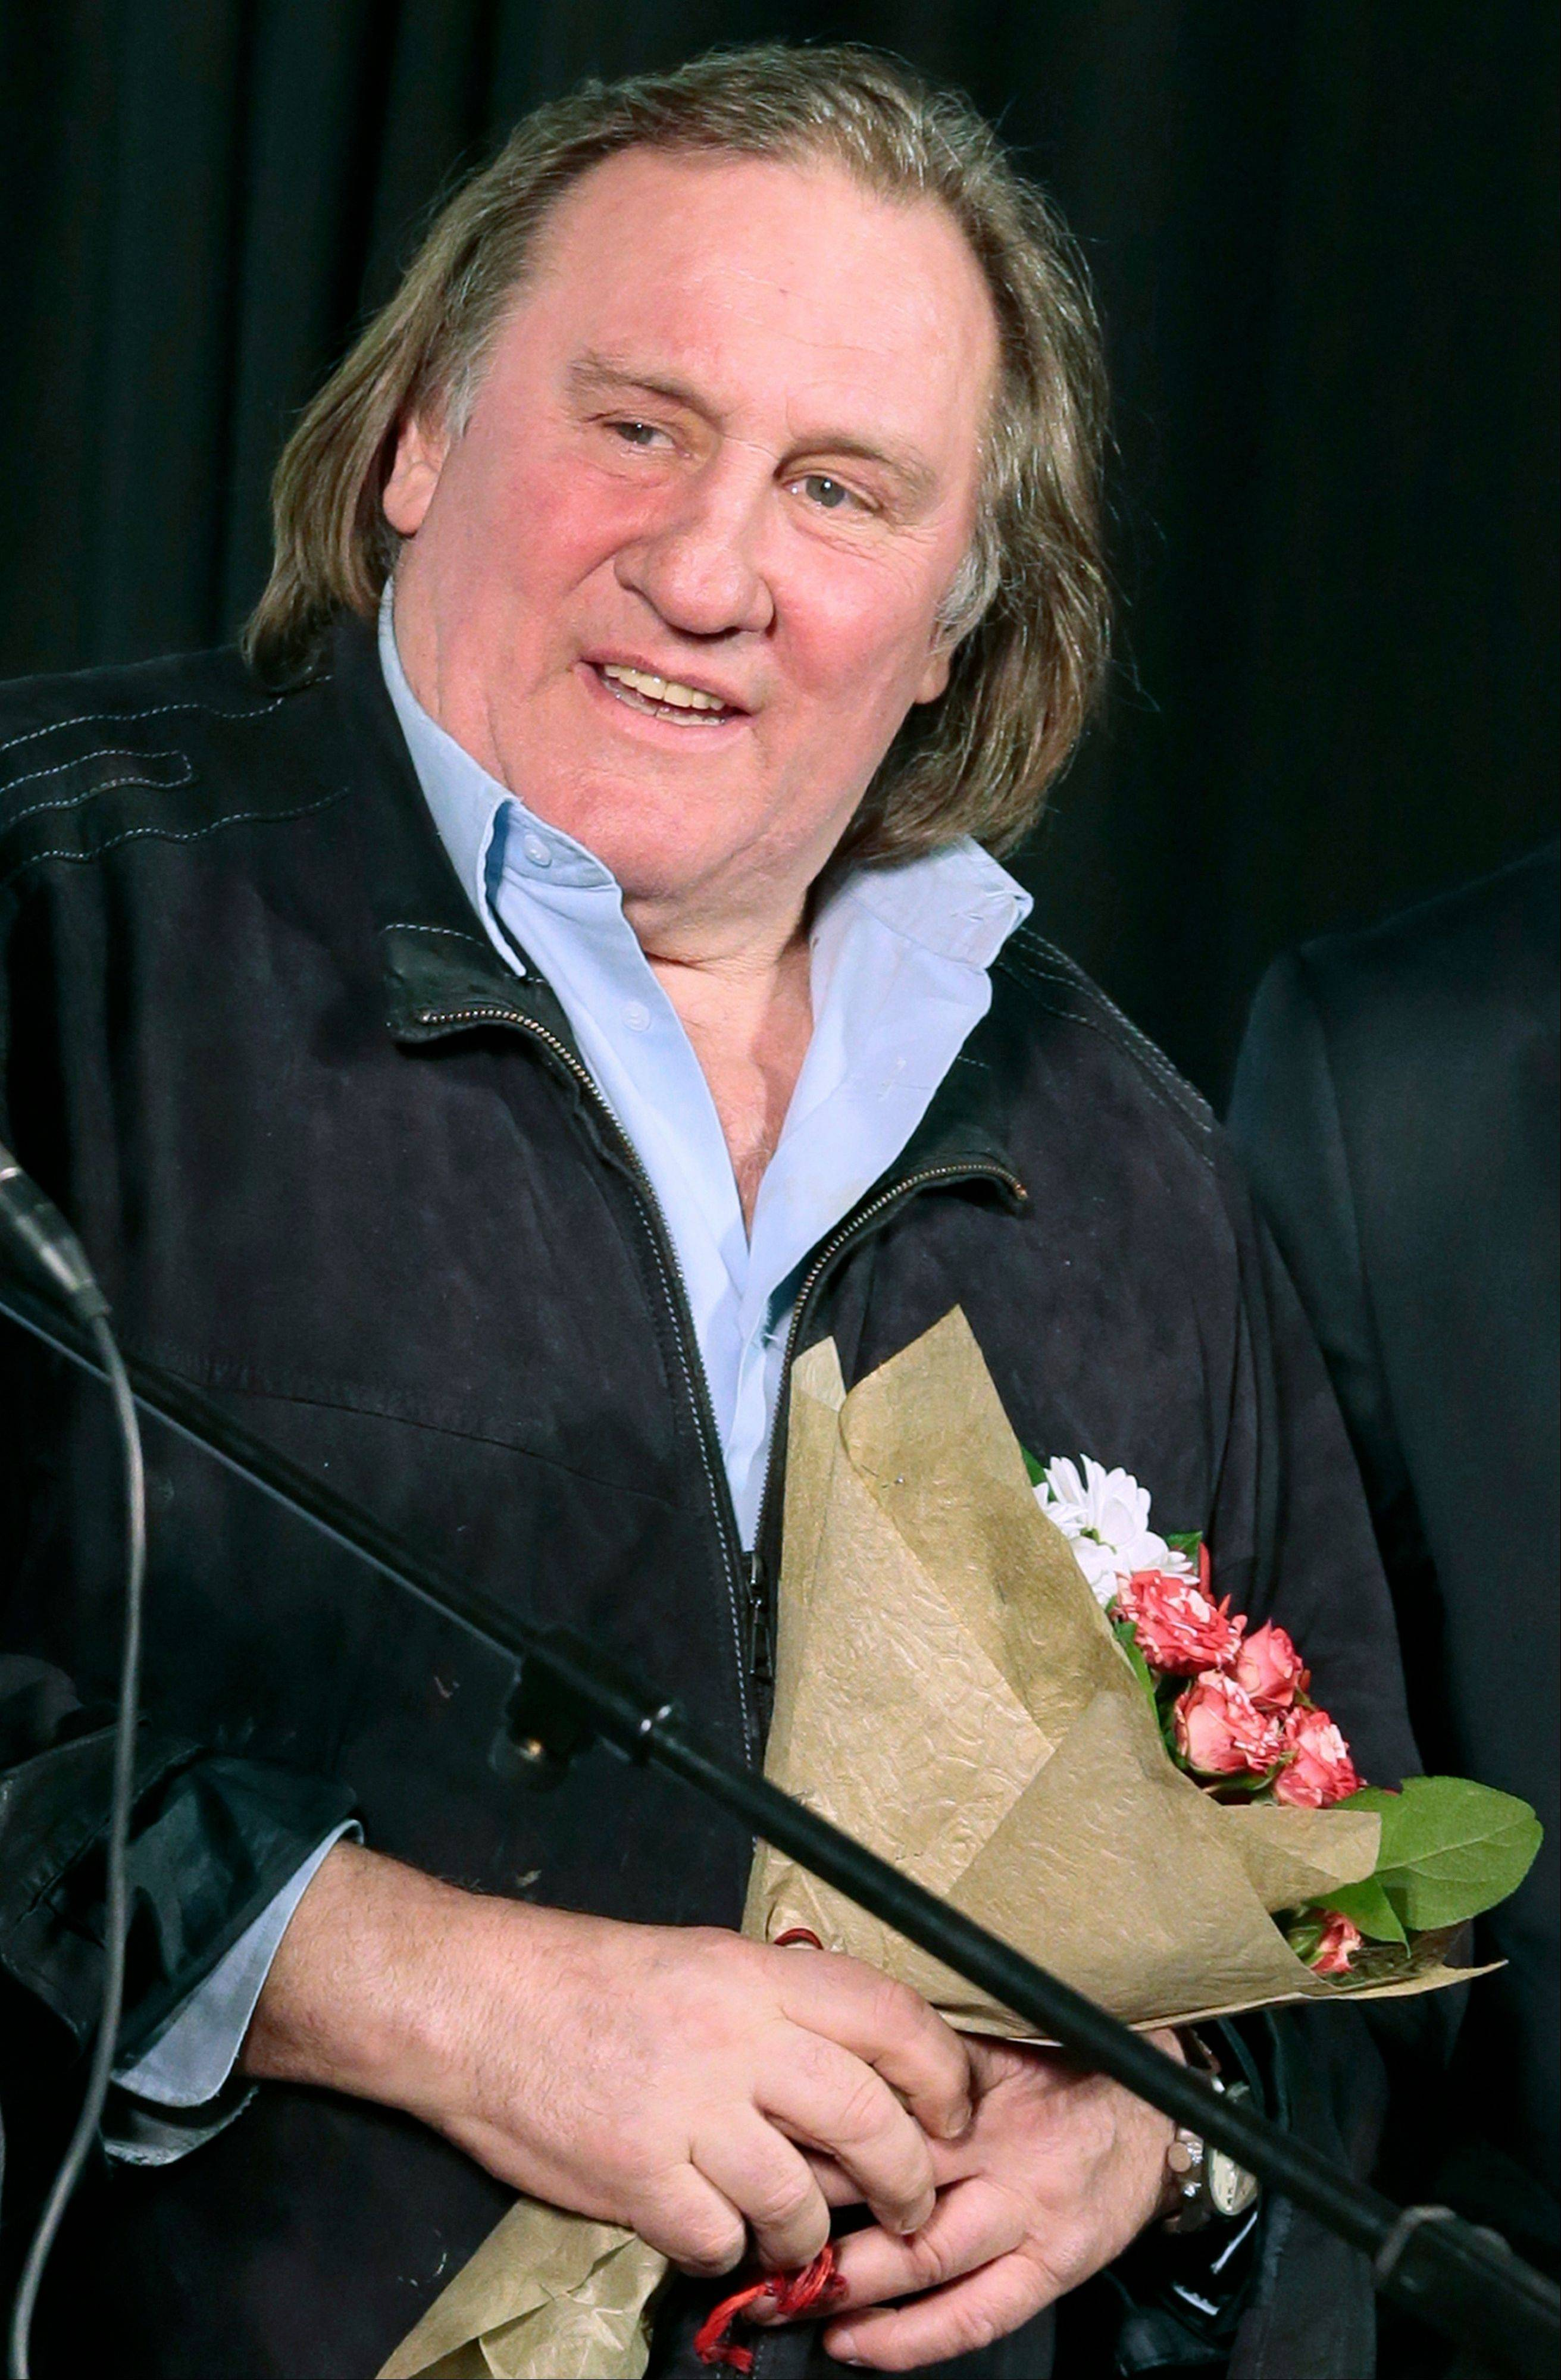 French actor Gerard Depardieu speaks Friday at the opening ceremony of the Illusion movie theater after its restoration in Moscow. President Vladimir Putin granted Depardieu Russian citizenship last month and Saturday he registered as a permanent resident of the city of Saransk.